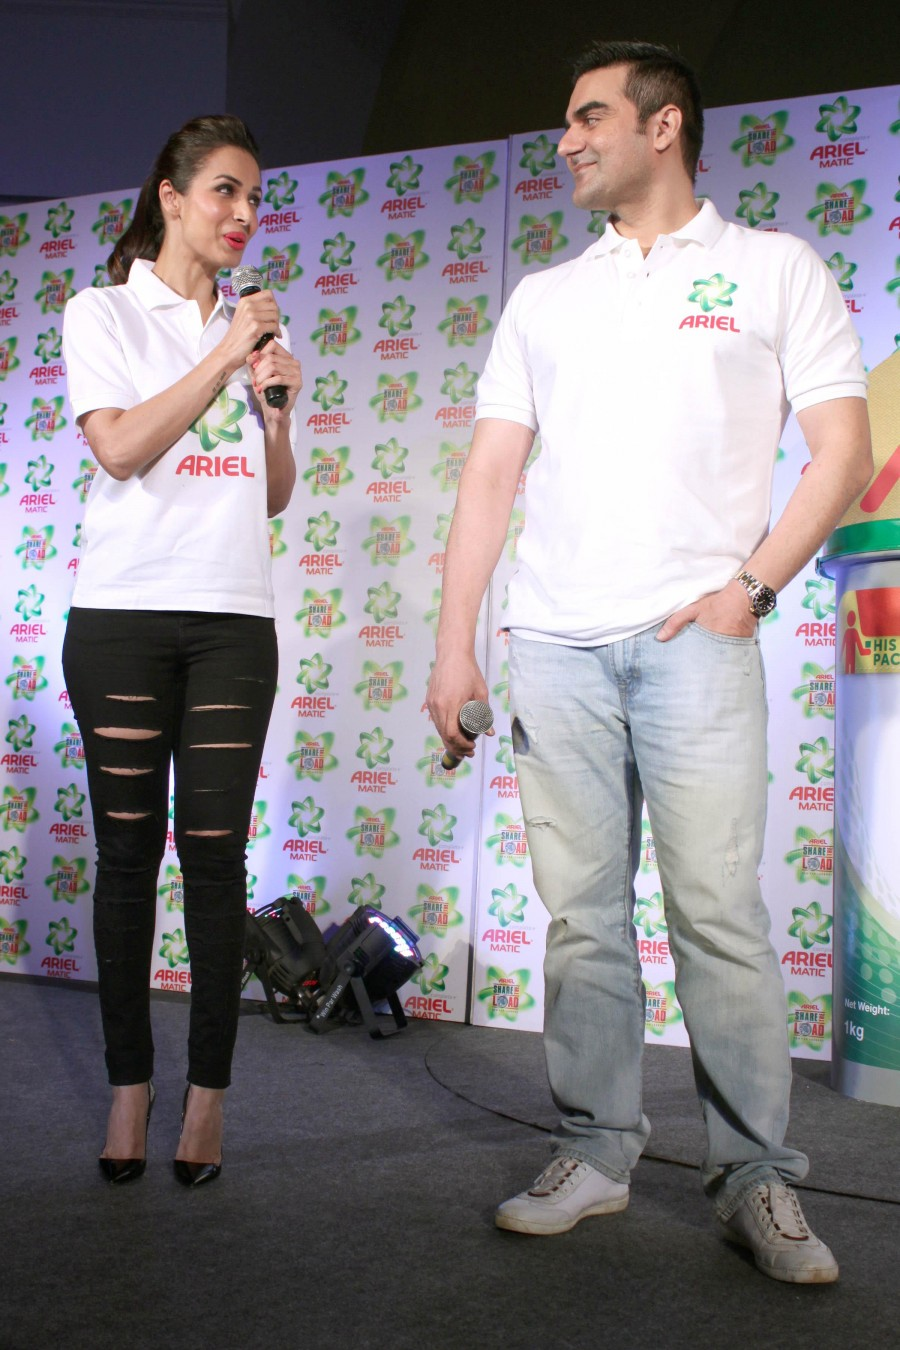 Arbaaz khan,Malaika arora khan,Tips for happy married life,Ariel detergent,Washing tips